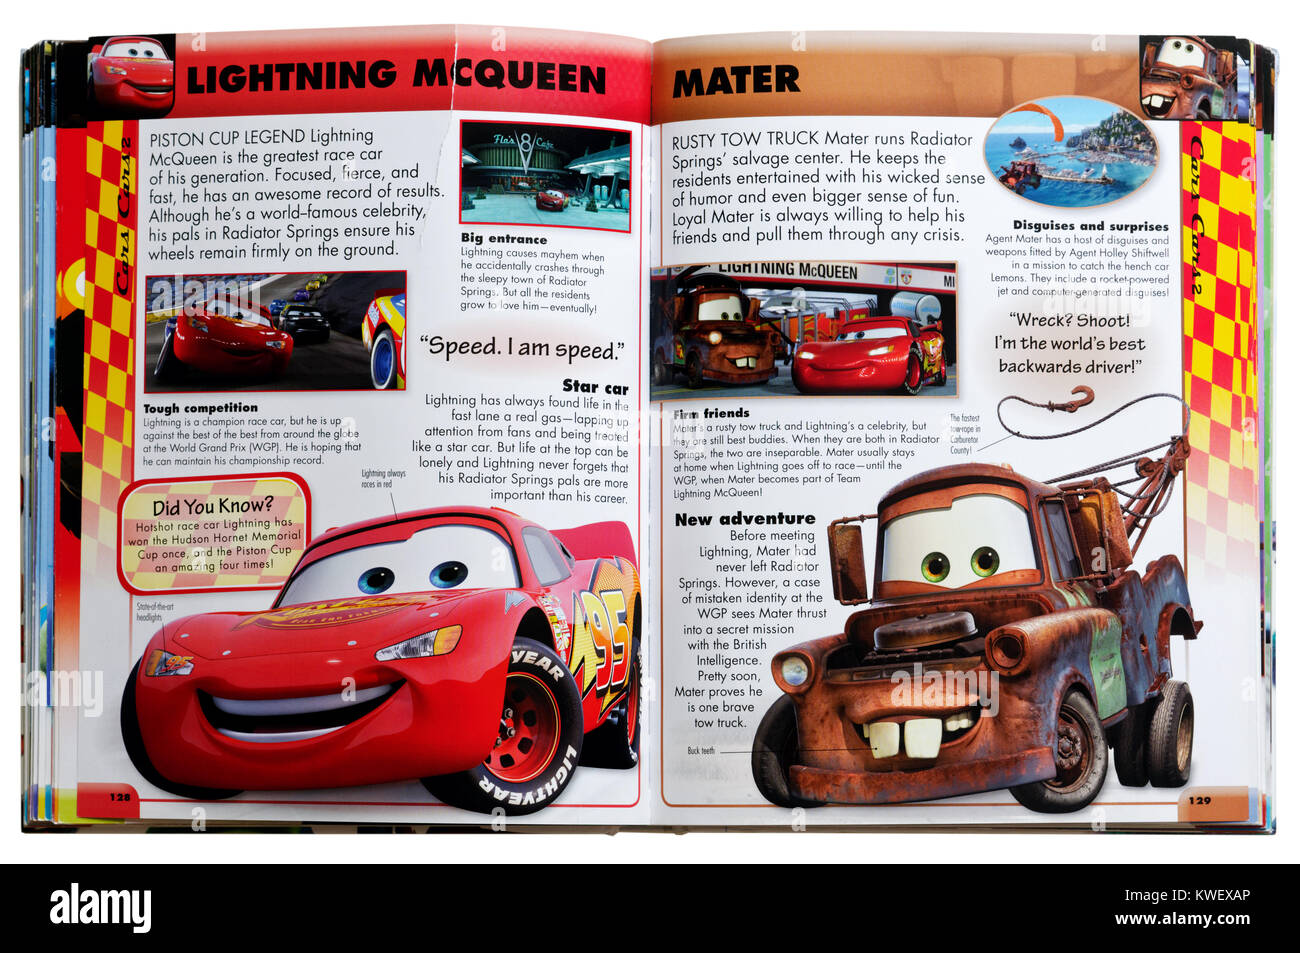 Pixar Character Lightning Mcqueen And Tow Mater From The Film Cars